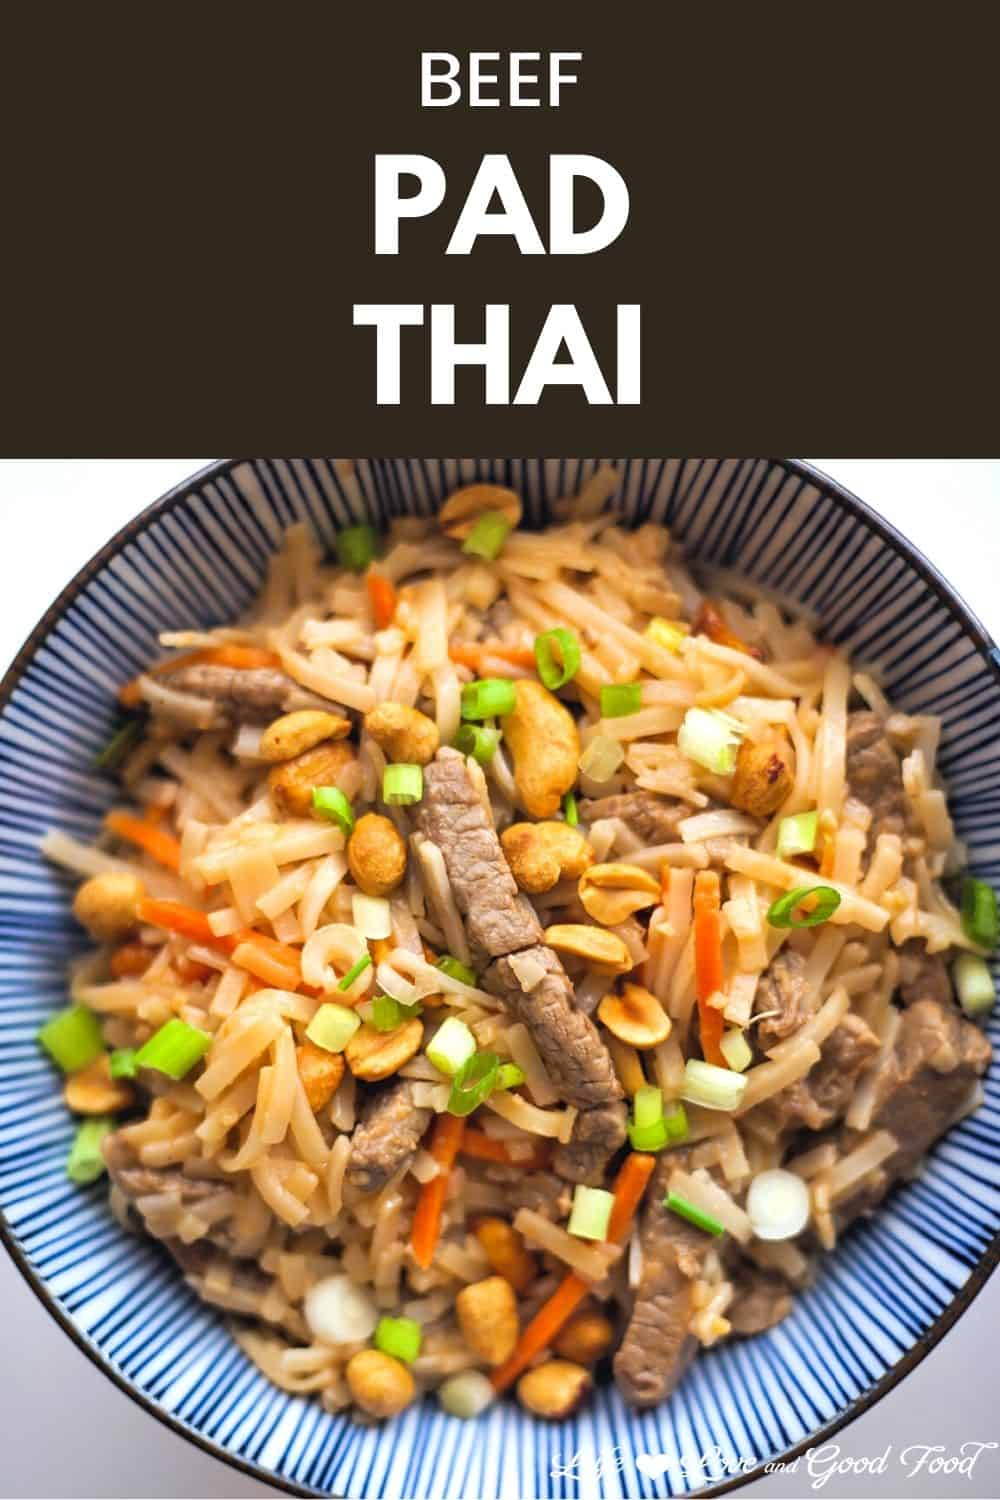 This easy, less-than-30-minute recipe for Beef Pad Thai with Crunchy Peanuts is a beautiful bowl of tender beef and silky rice noodles with dry-roasted peanuts in a delicious creamy sauce.